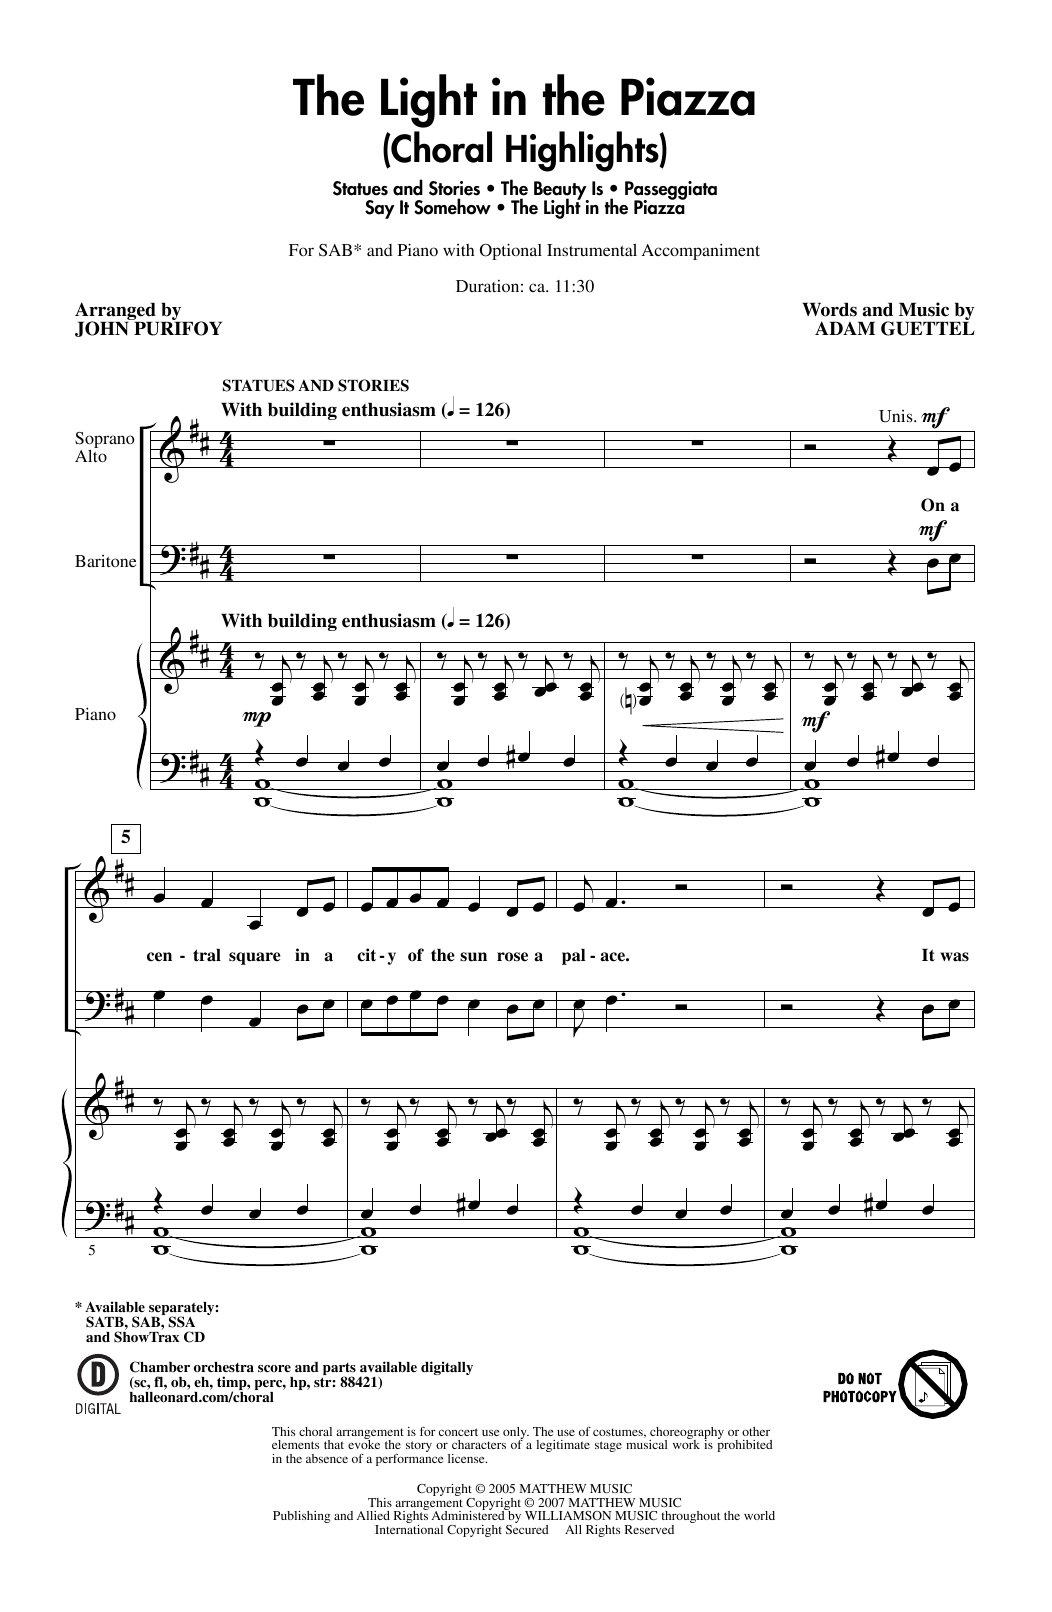 Download Adam Guettel 'The Light In The Piazza (Choral Highlights) (arr. John Purifoy)' Digital Sheet Music Notes & Chords and start playing in minutes